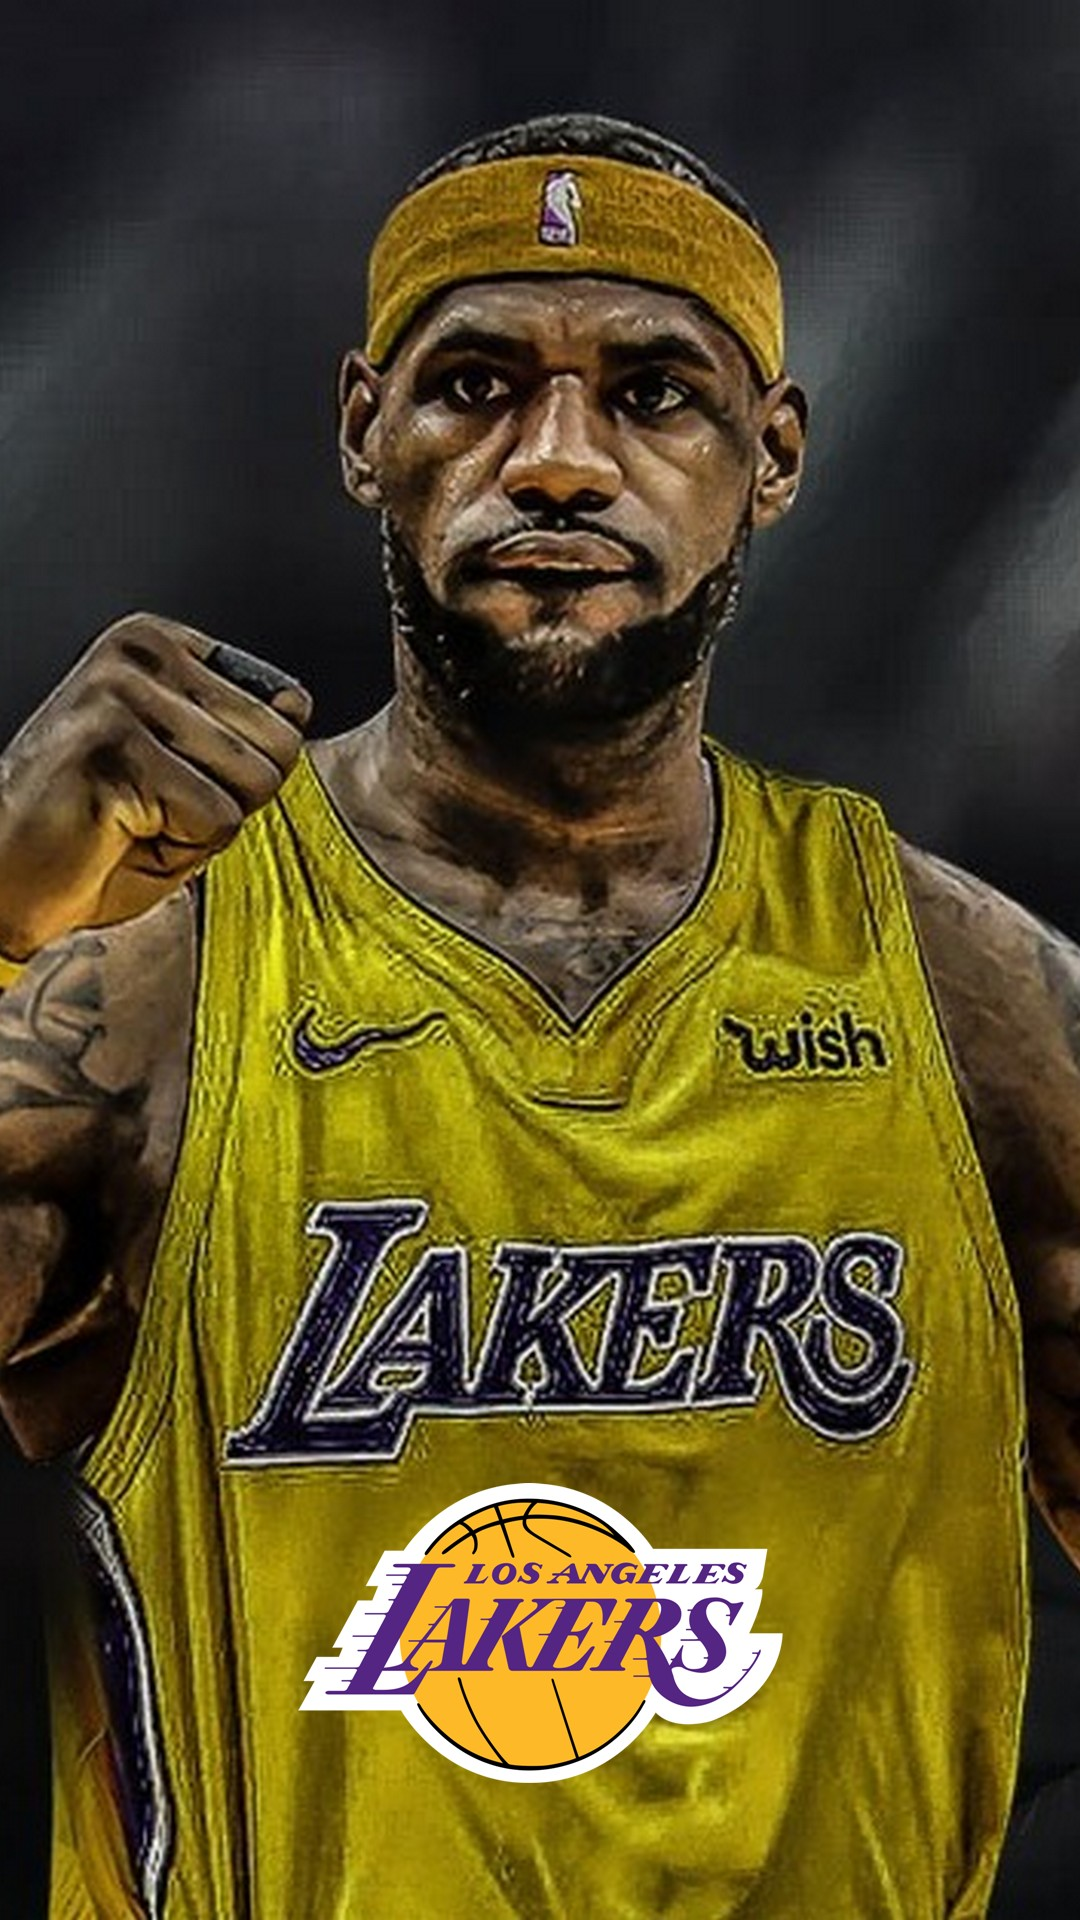 Free Download Lebron James Lakers Hd Wallpaper For Iphone 2020 Basketball 1080x1920 For Your Desktop Mobile Tablet Explore 57 Iphone Player 2020 Wallpapers Iphone Player 2020 Wallpapers 2020 Iphone Wallpapers Player Background